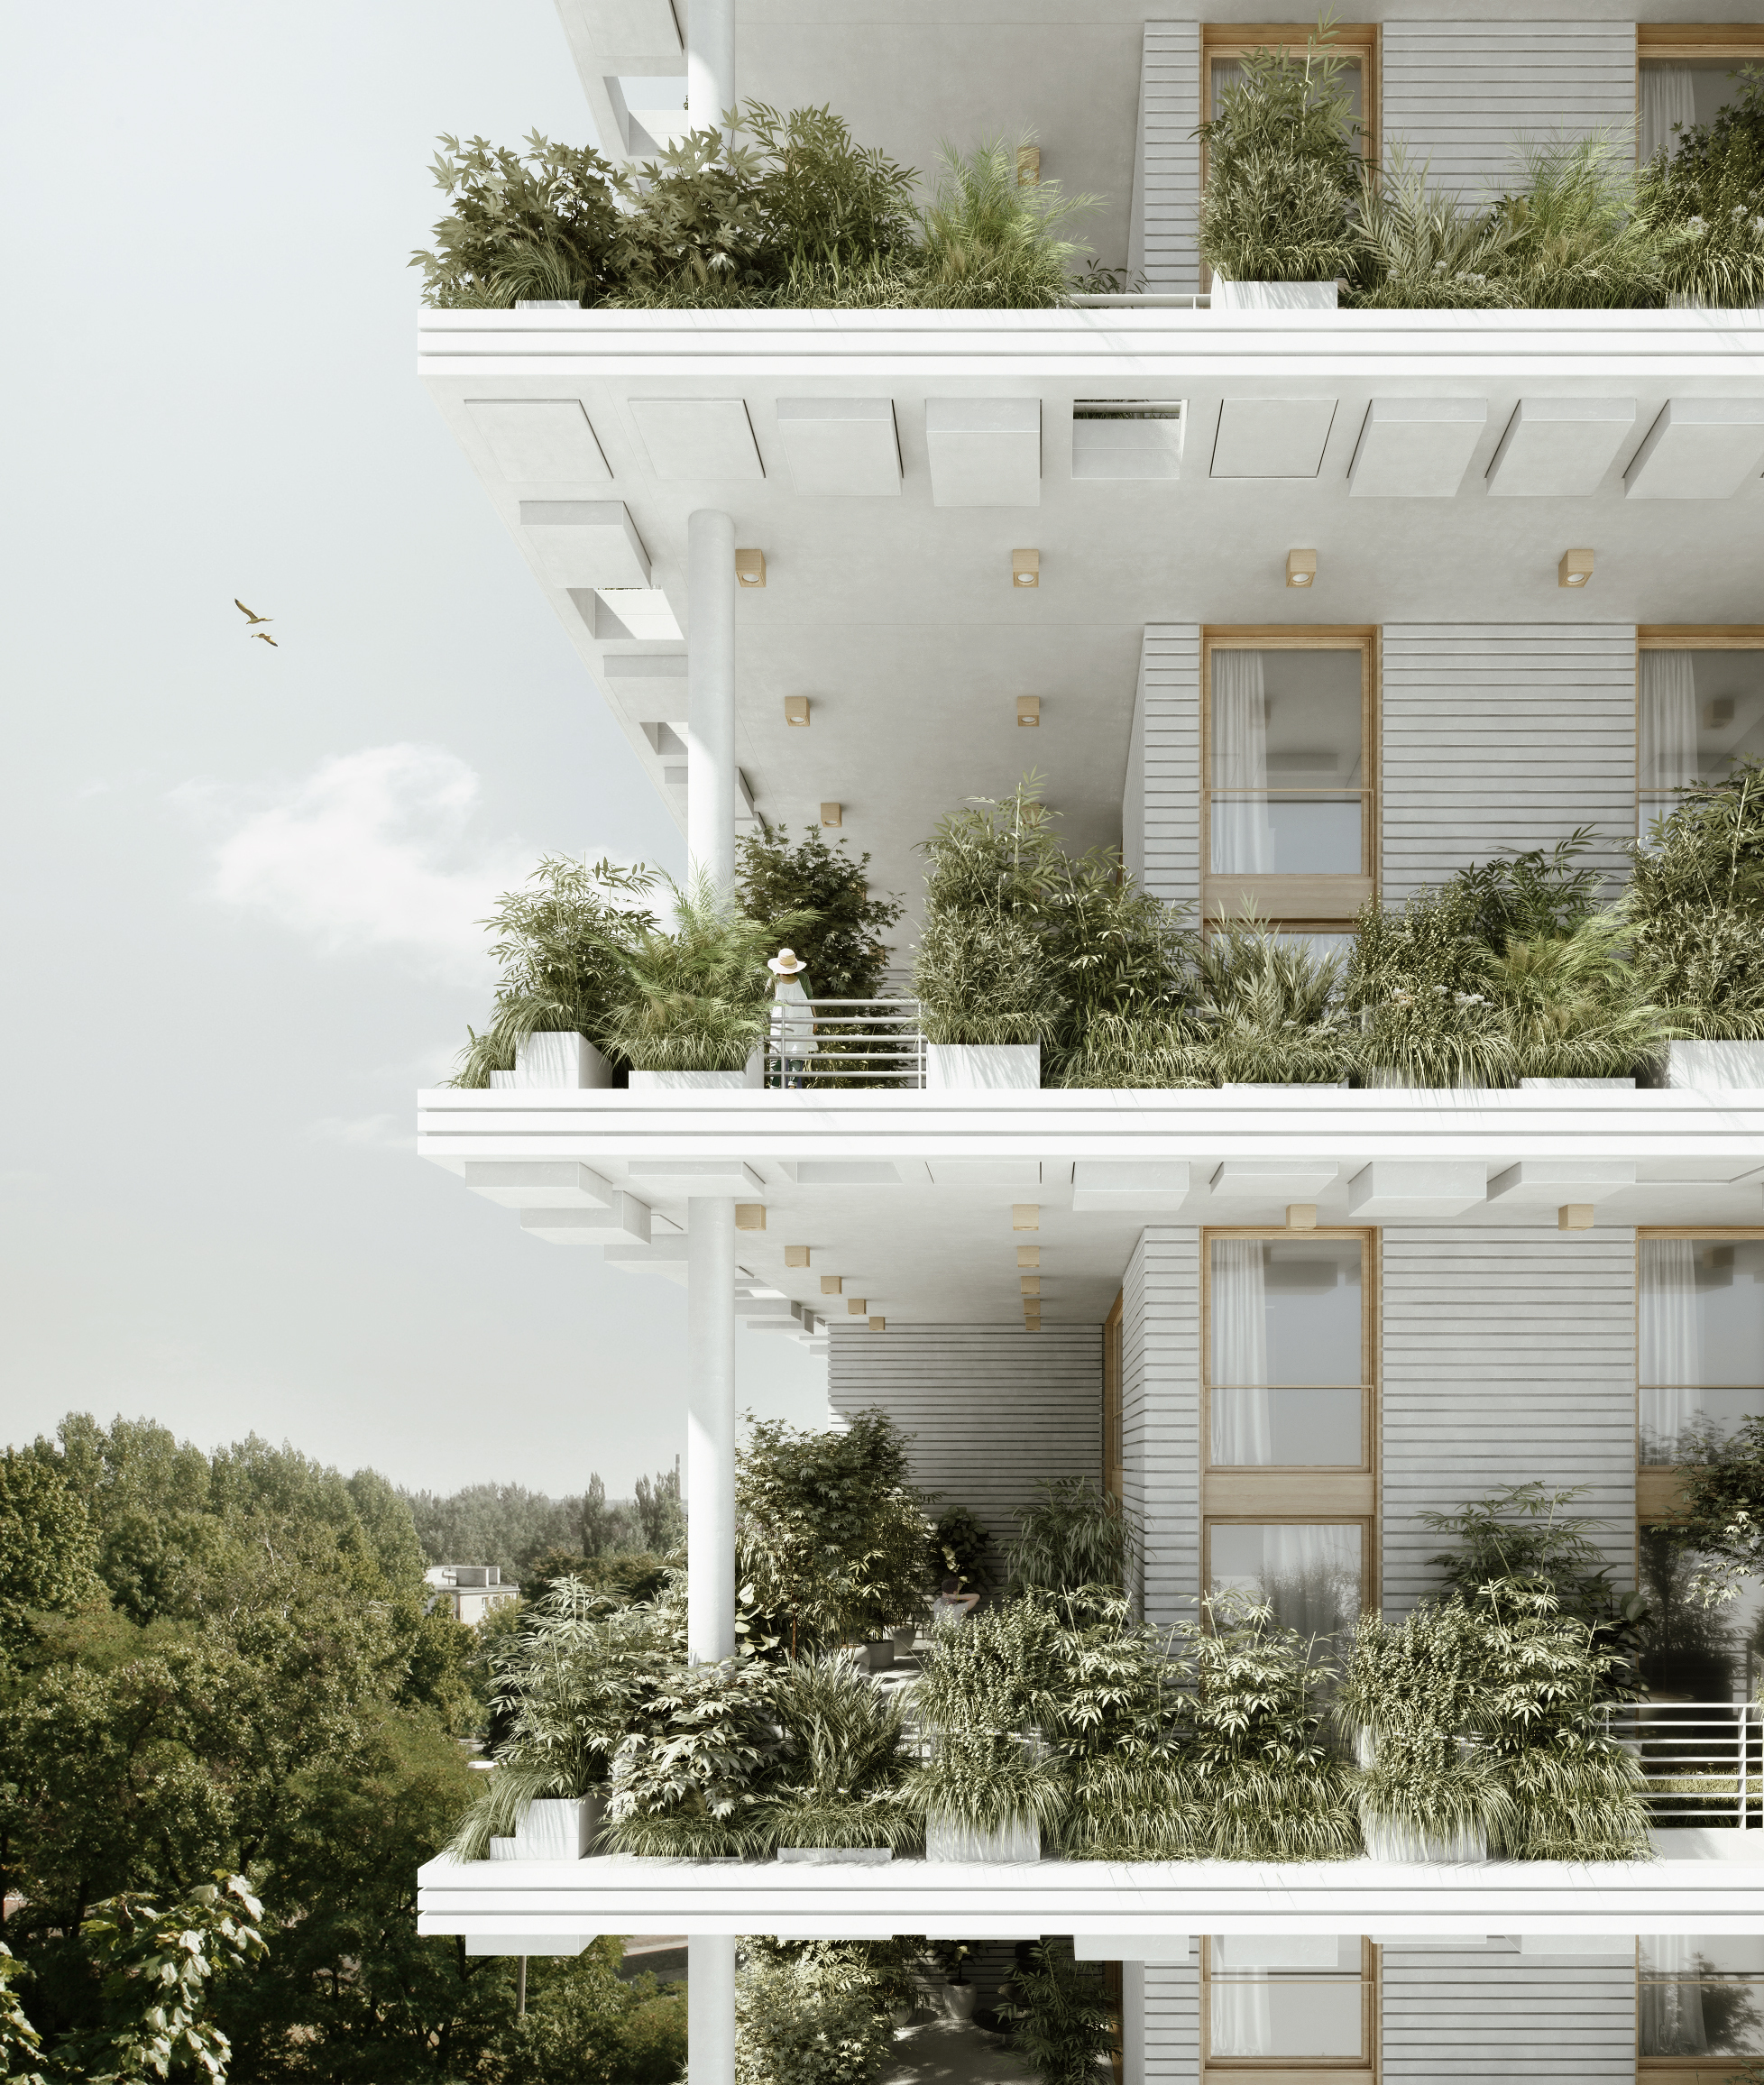 Penda designs sky villas with vertical gardens for for Architecture design for home in hyderabad